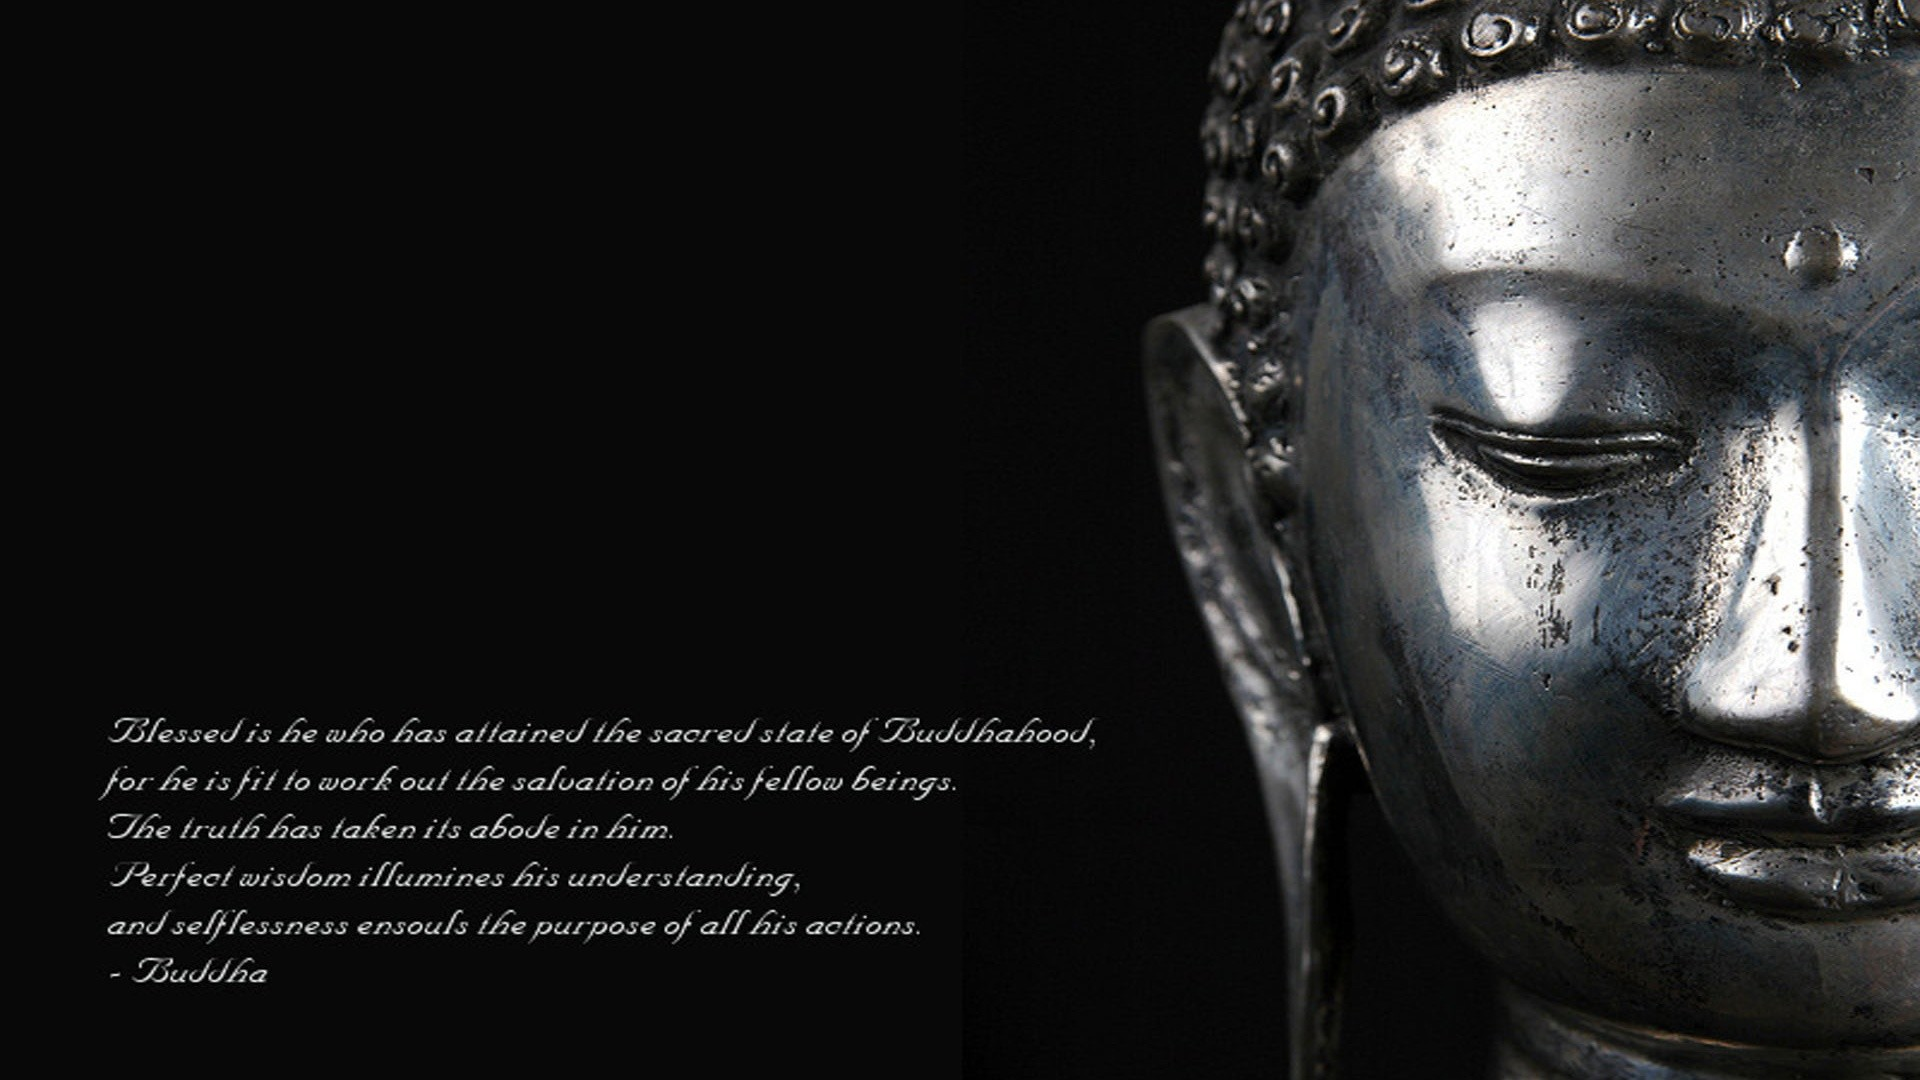 15 HD Buddha Desktop Wallpapers For Free Download